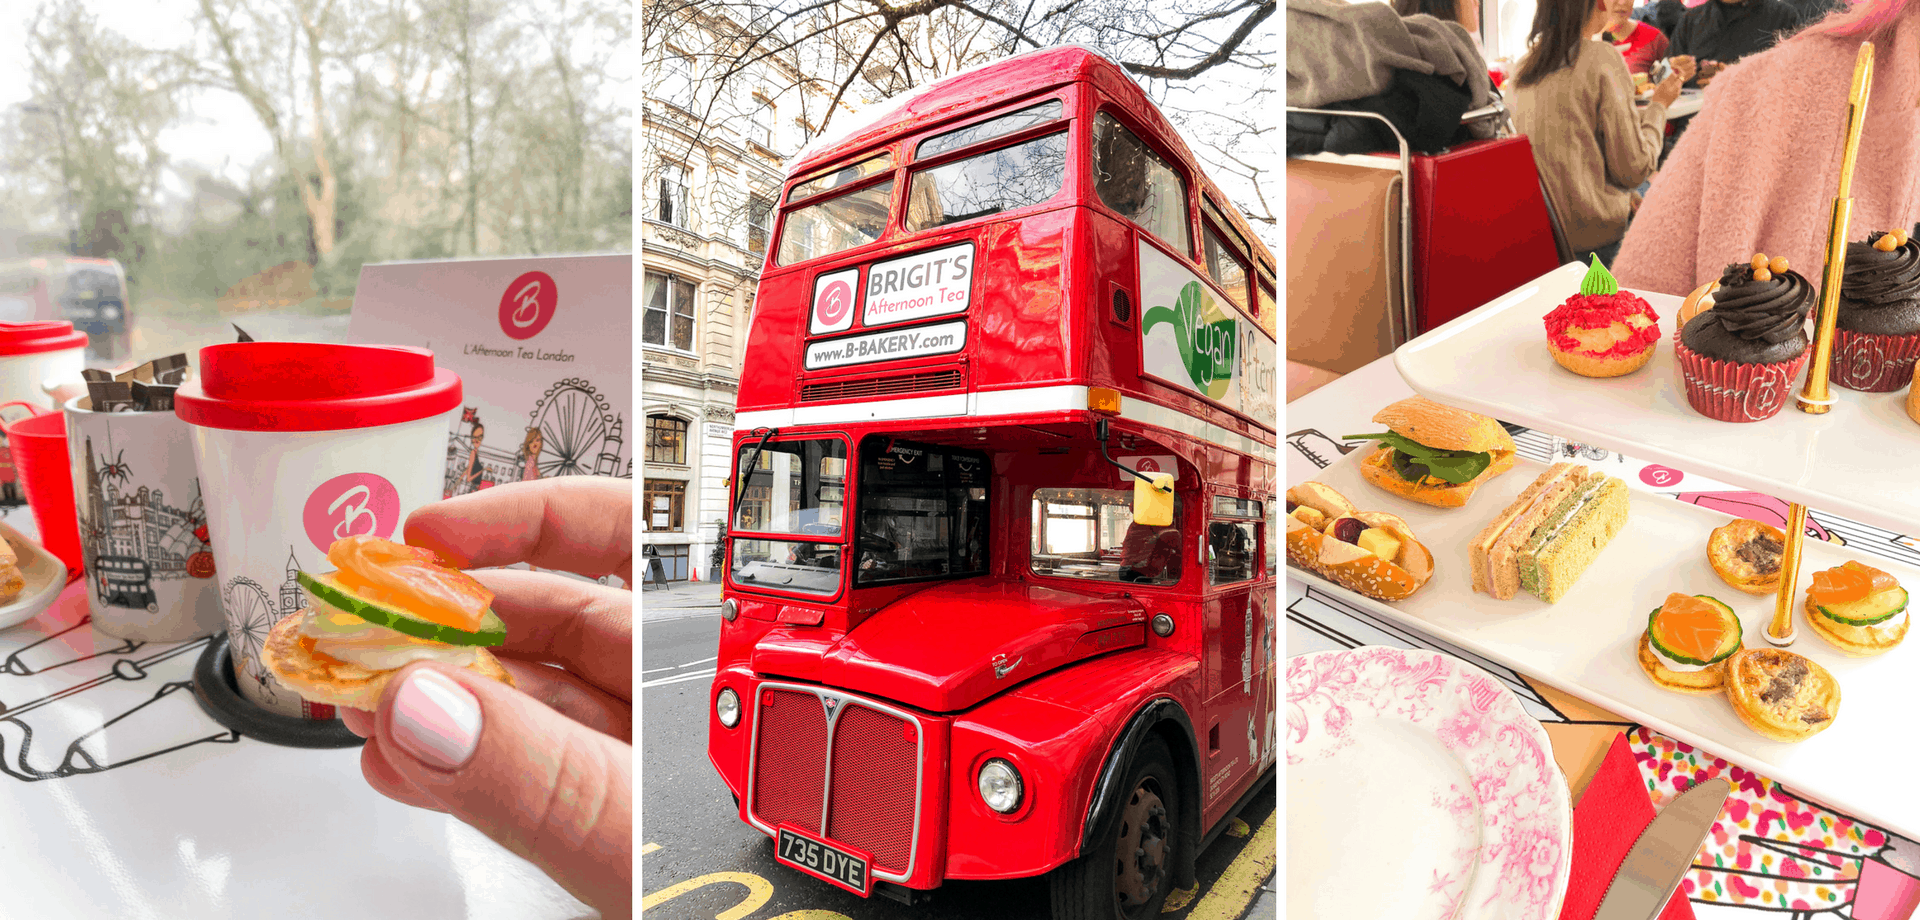 The Best Afternoon Tea Bus London Has To Offer